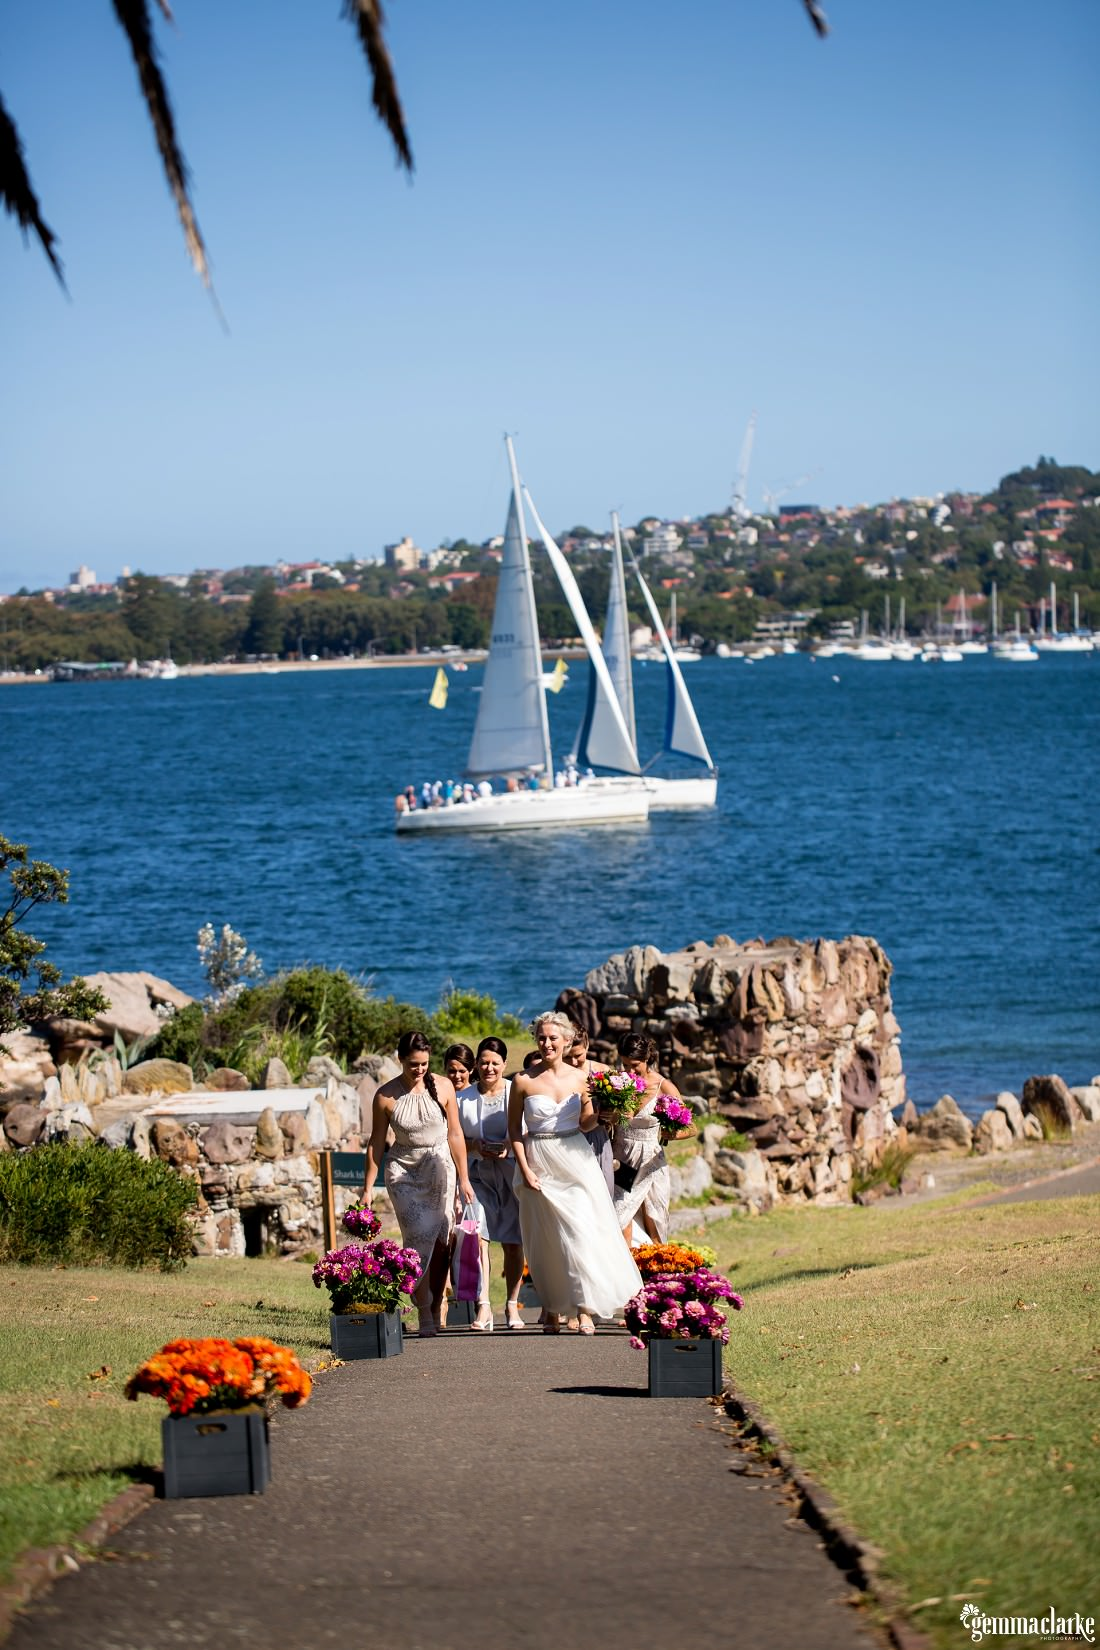 A bride and her bridesmaids walking up a path with two yachts sailing past in the background, Shark Island Wedding